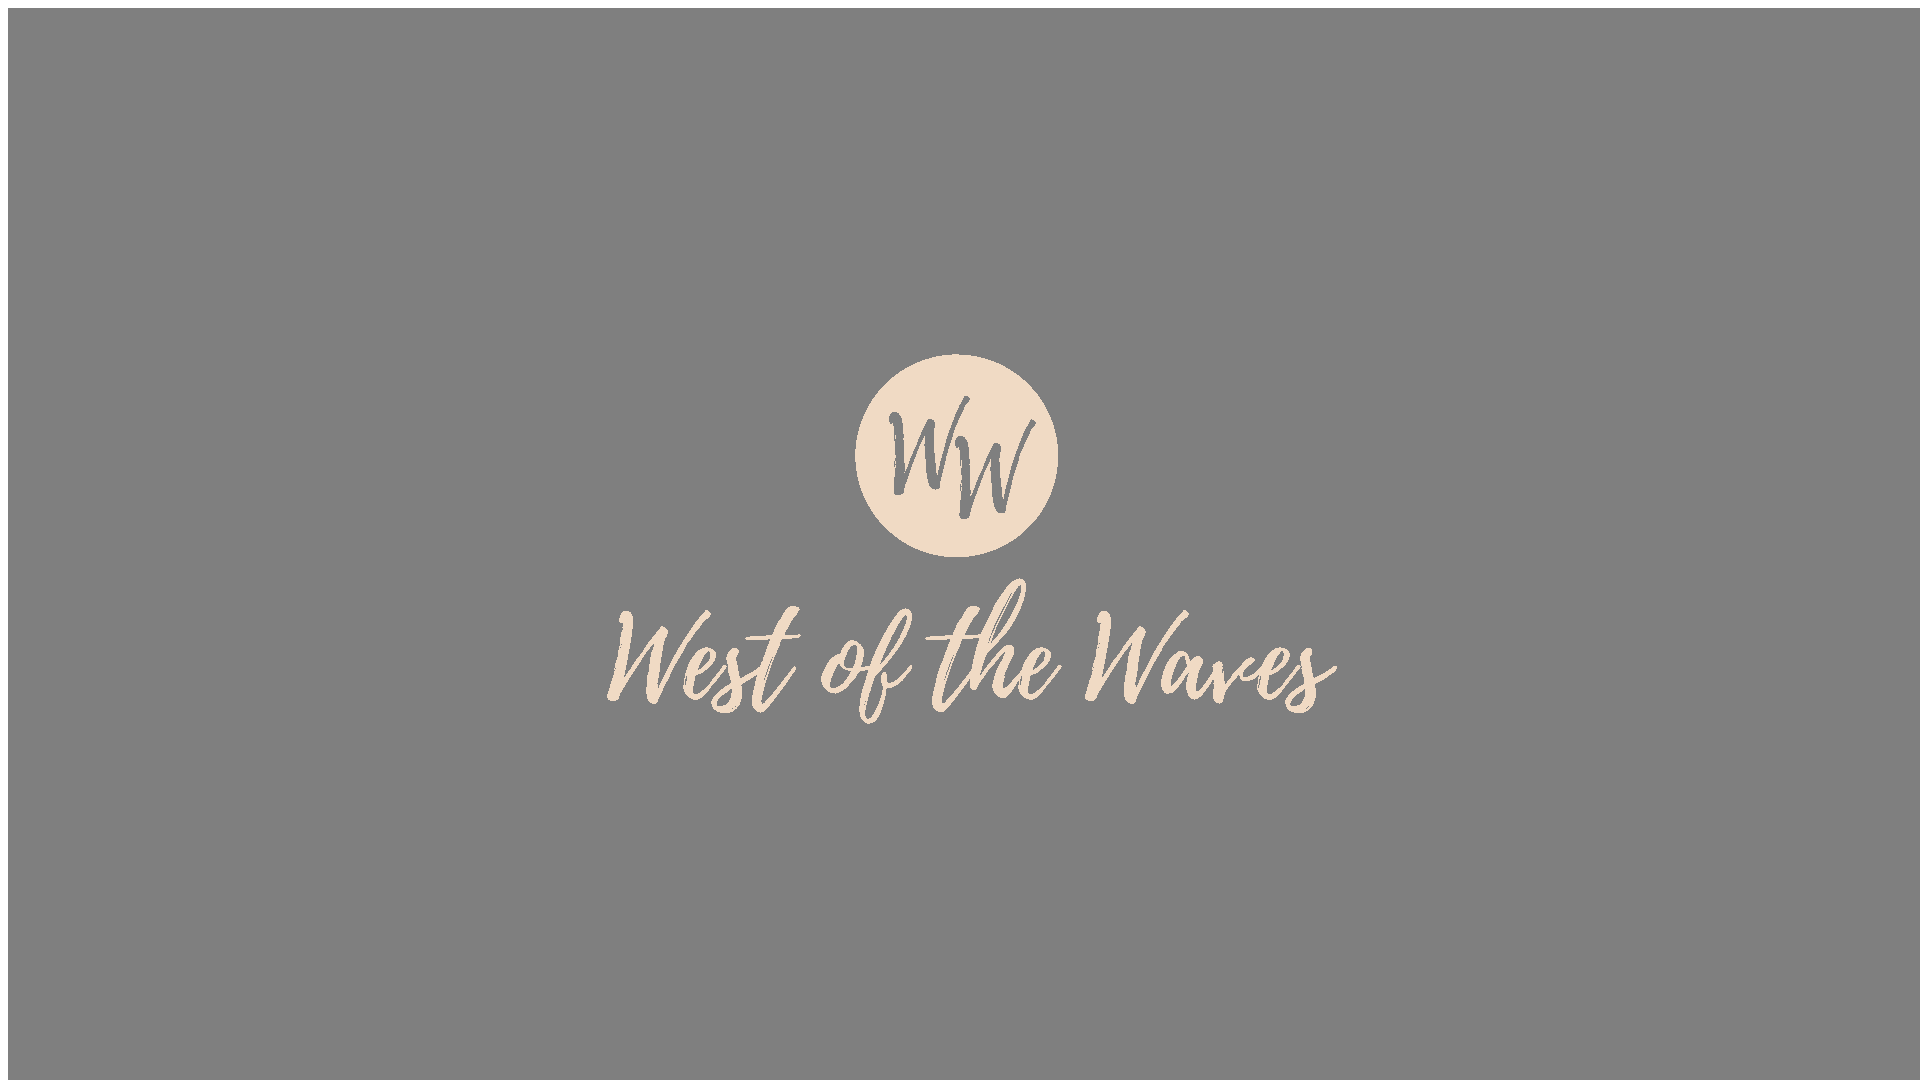 West of the Waves